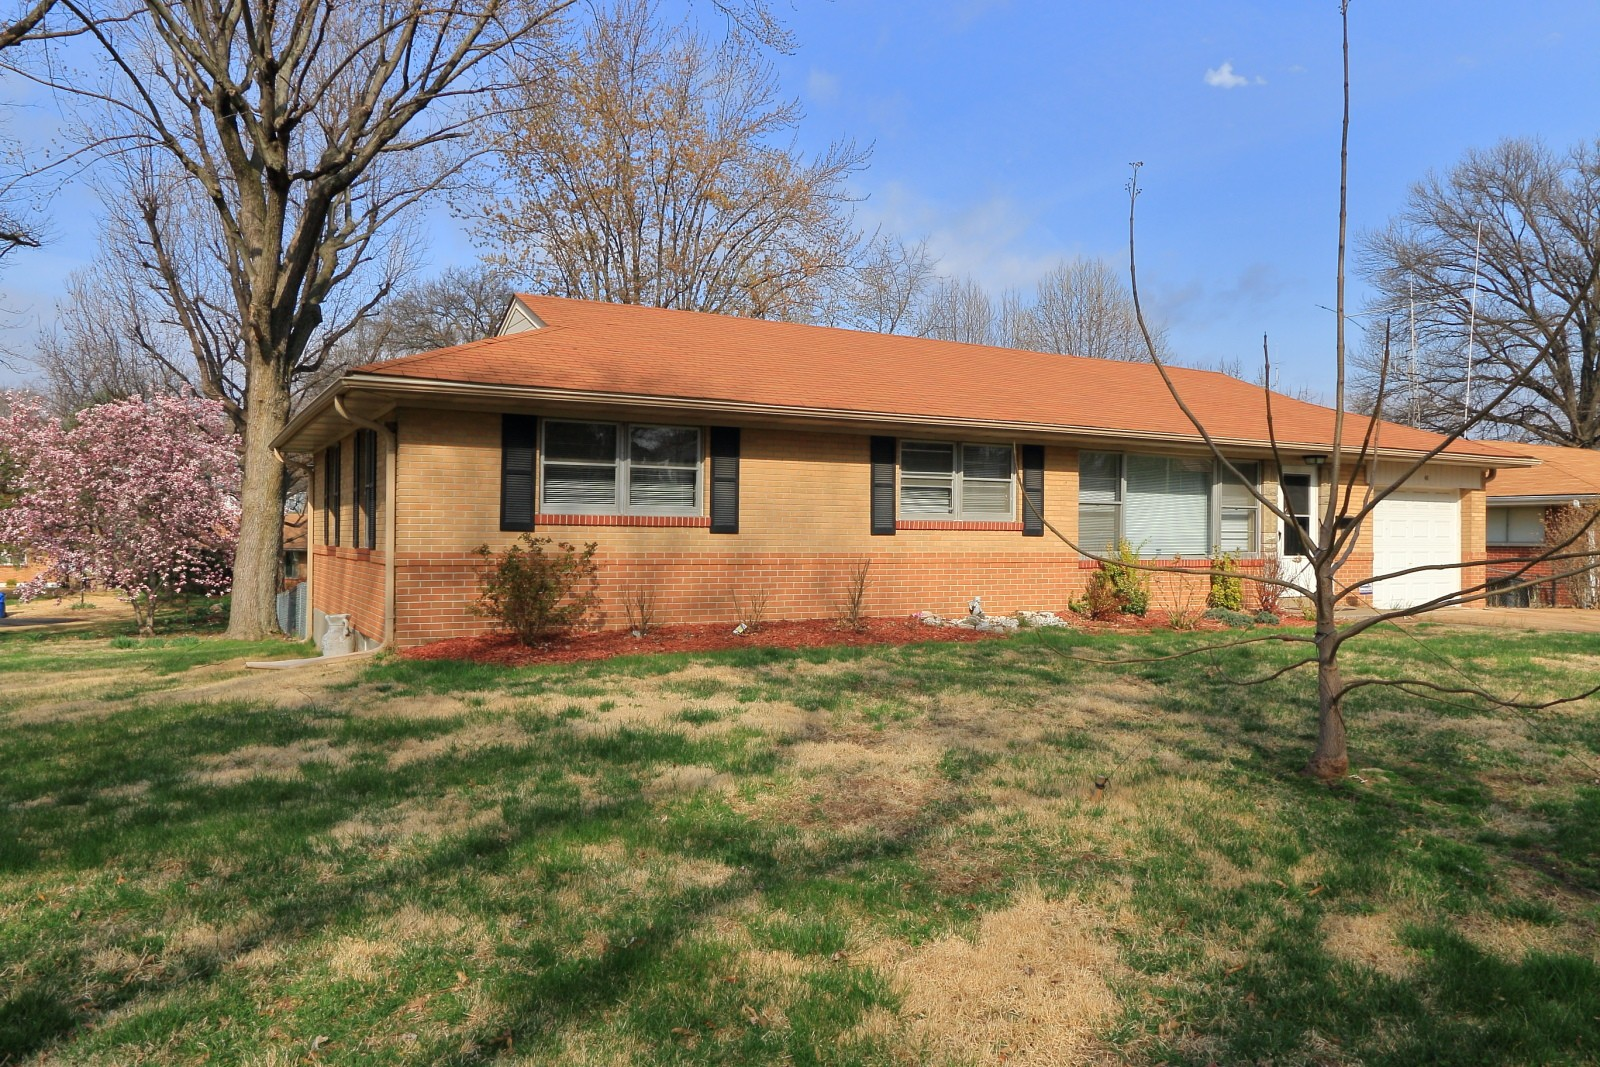 46 Jean Dr Florissant Mo 63031 3 Bedroom House For Rent For 1 175 Month Zumper